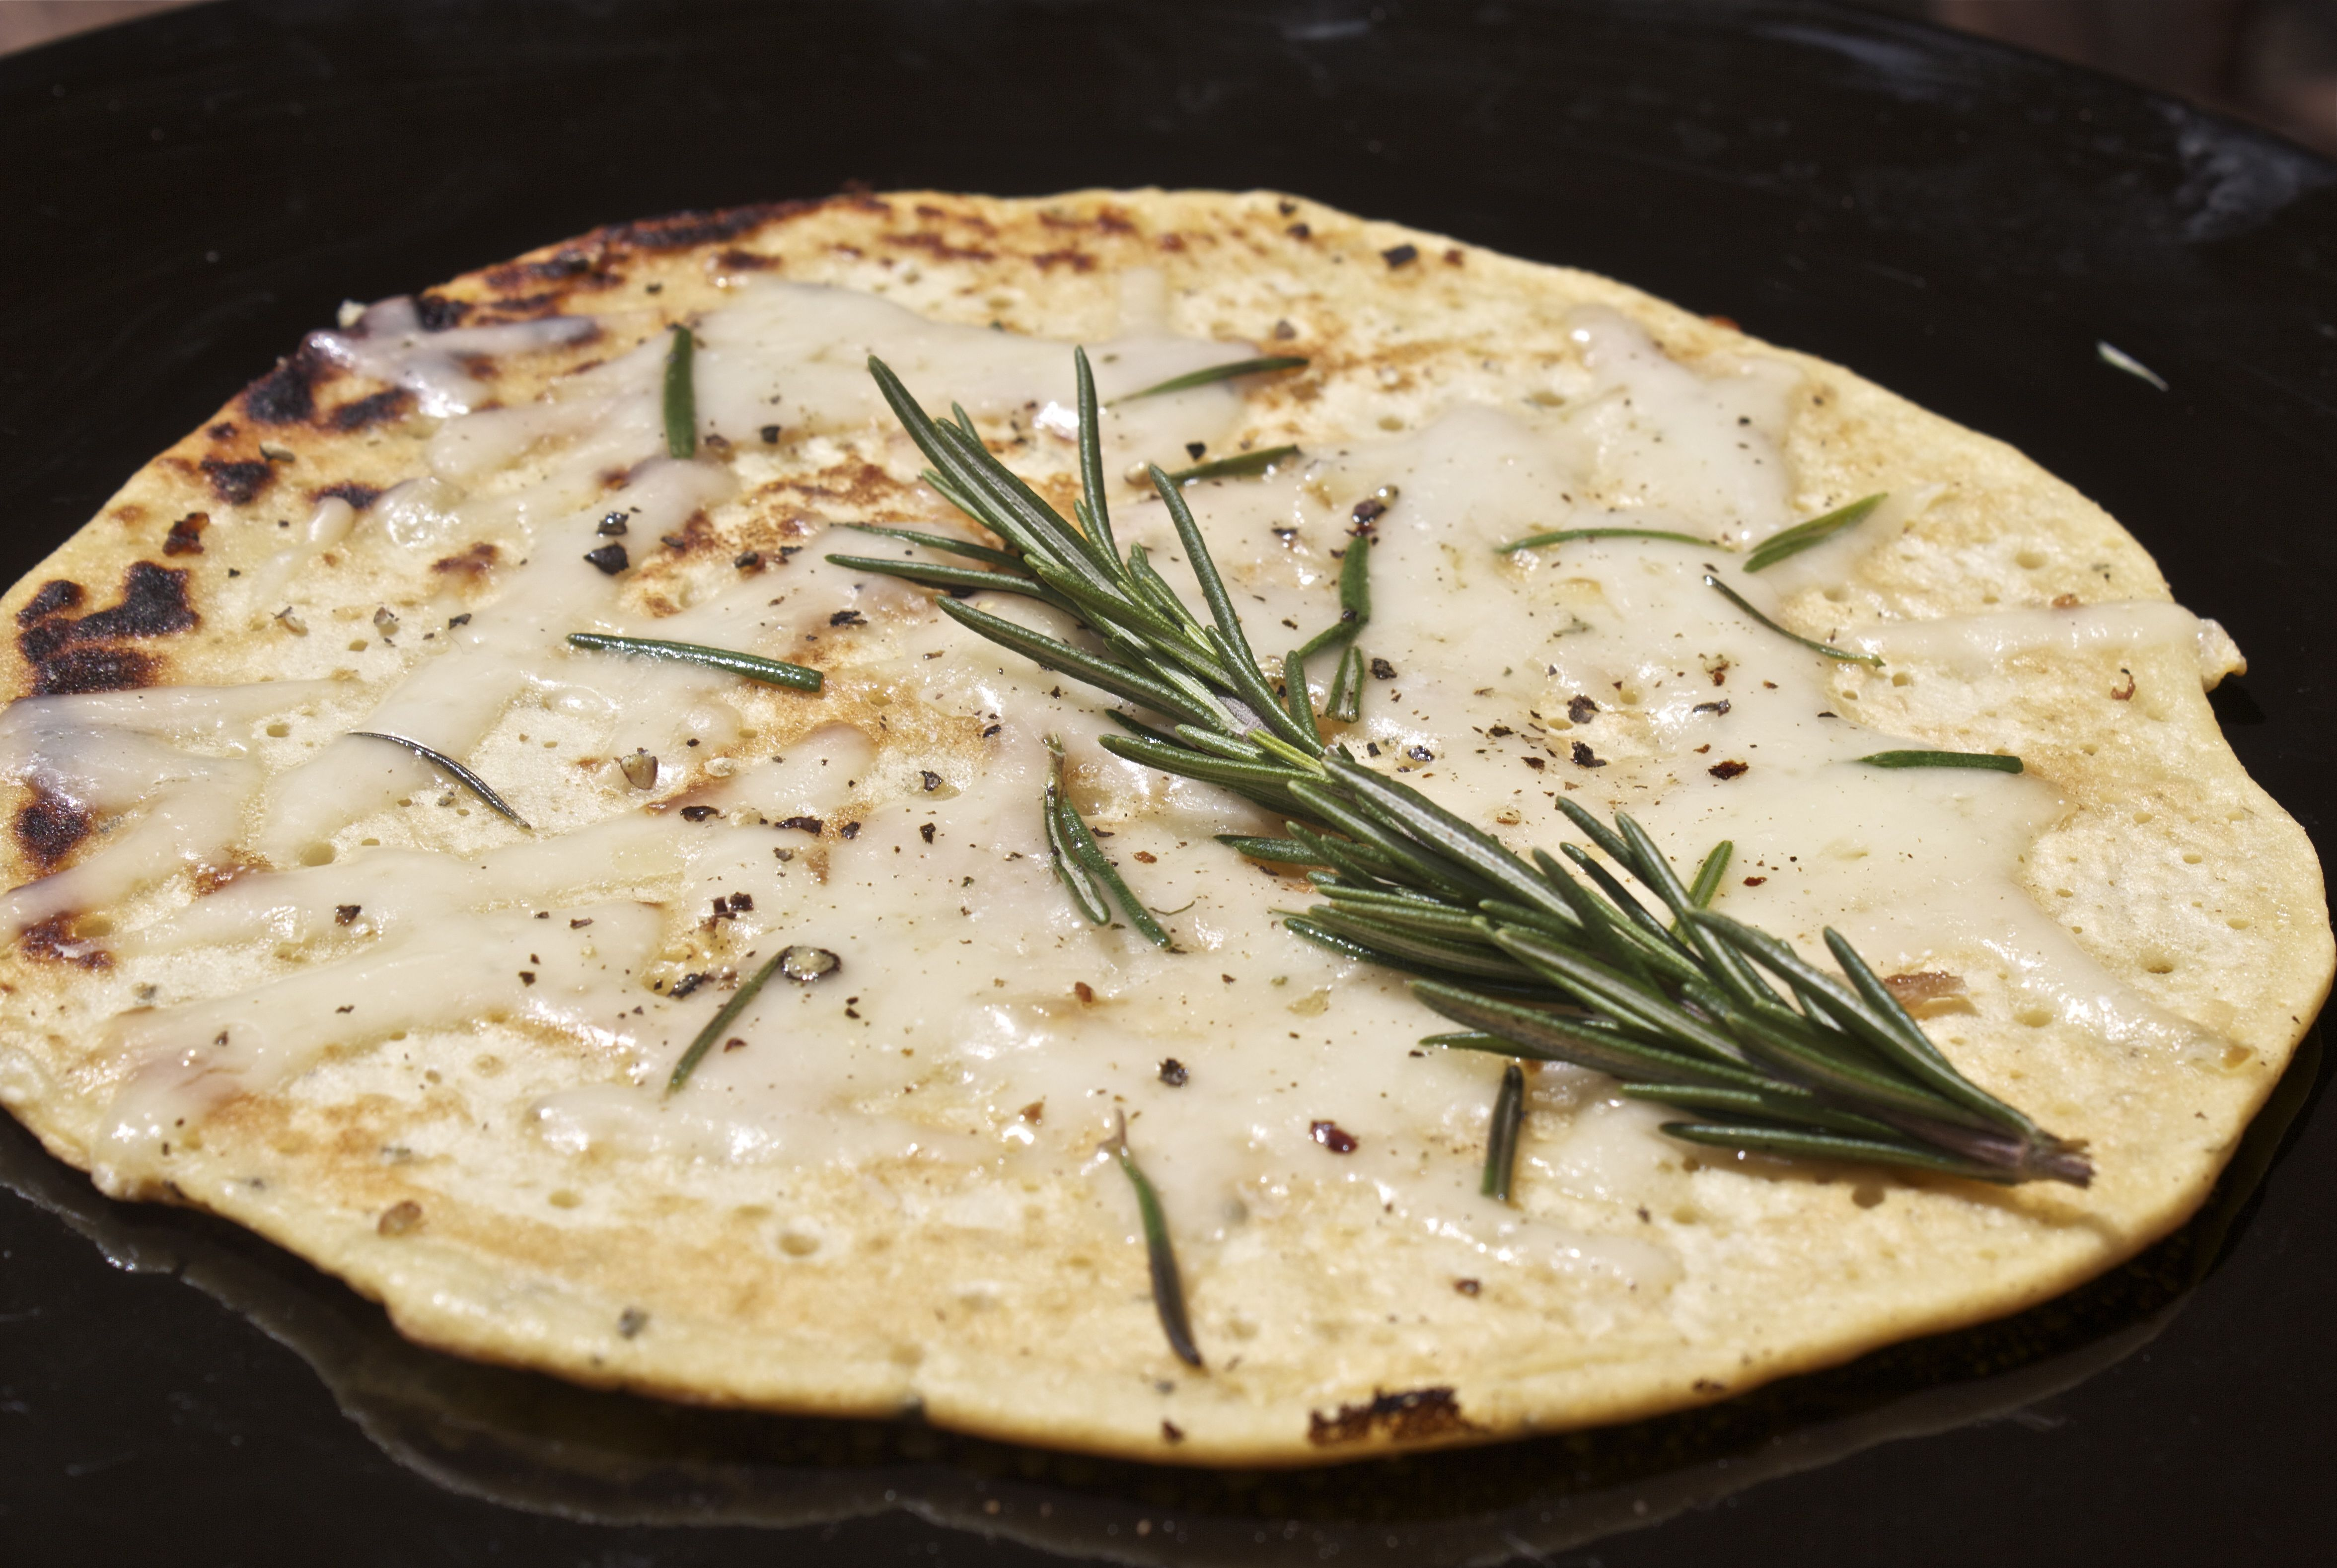 Easiest gluten free pizza base, Garlic Rosemary and Comte Socca  http://wutheringbites.co.uk/2012/06/17/the-easiest-quickest-gluten-free-pizza-base-you-could-ever-make-socca-me-up/